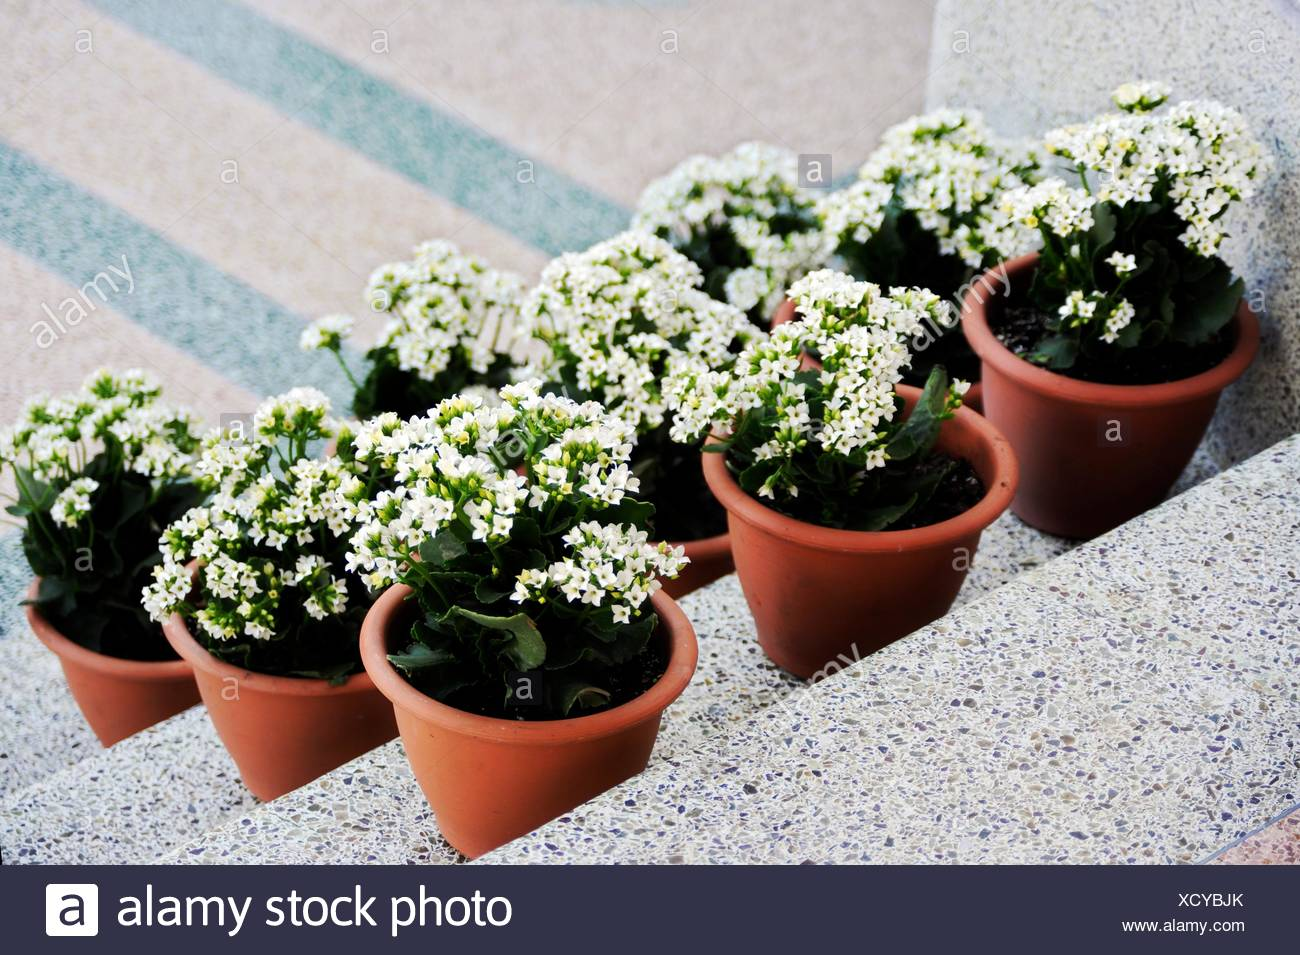 Three rows of white flowered plants on terrazo steps stock photo three rows of white flowered plants on terrazo steps mightylinksfo